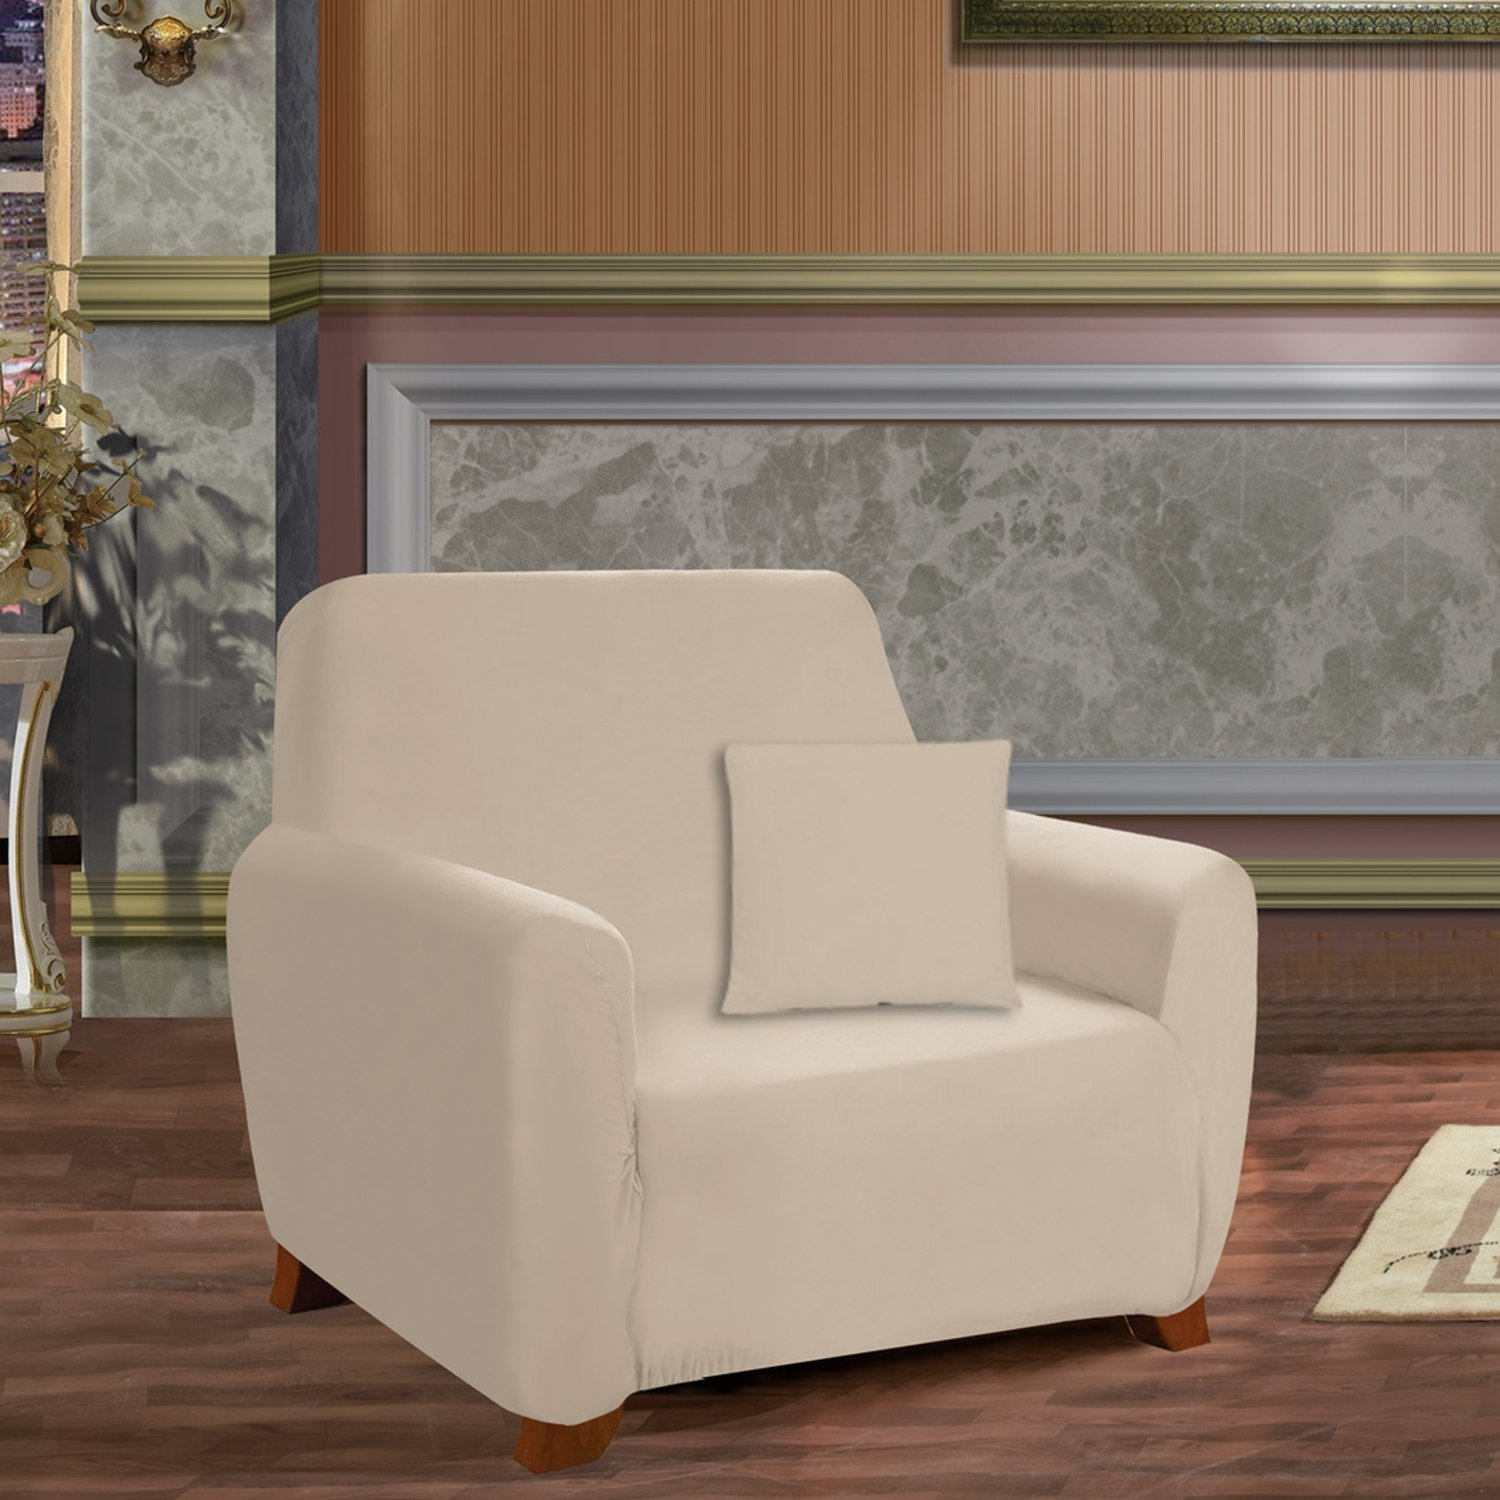 Chair Ruby Elegant Comfort Furniture Jersey STRETCH SLIPCOVER